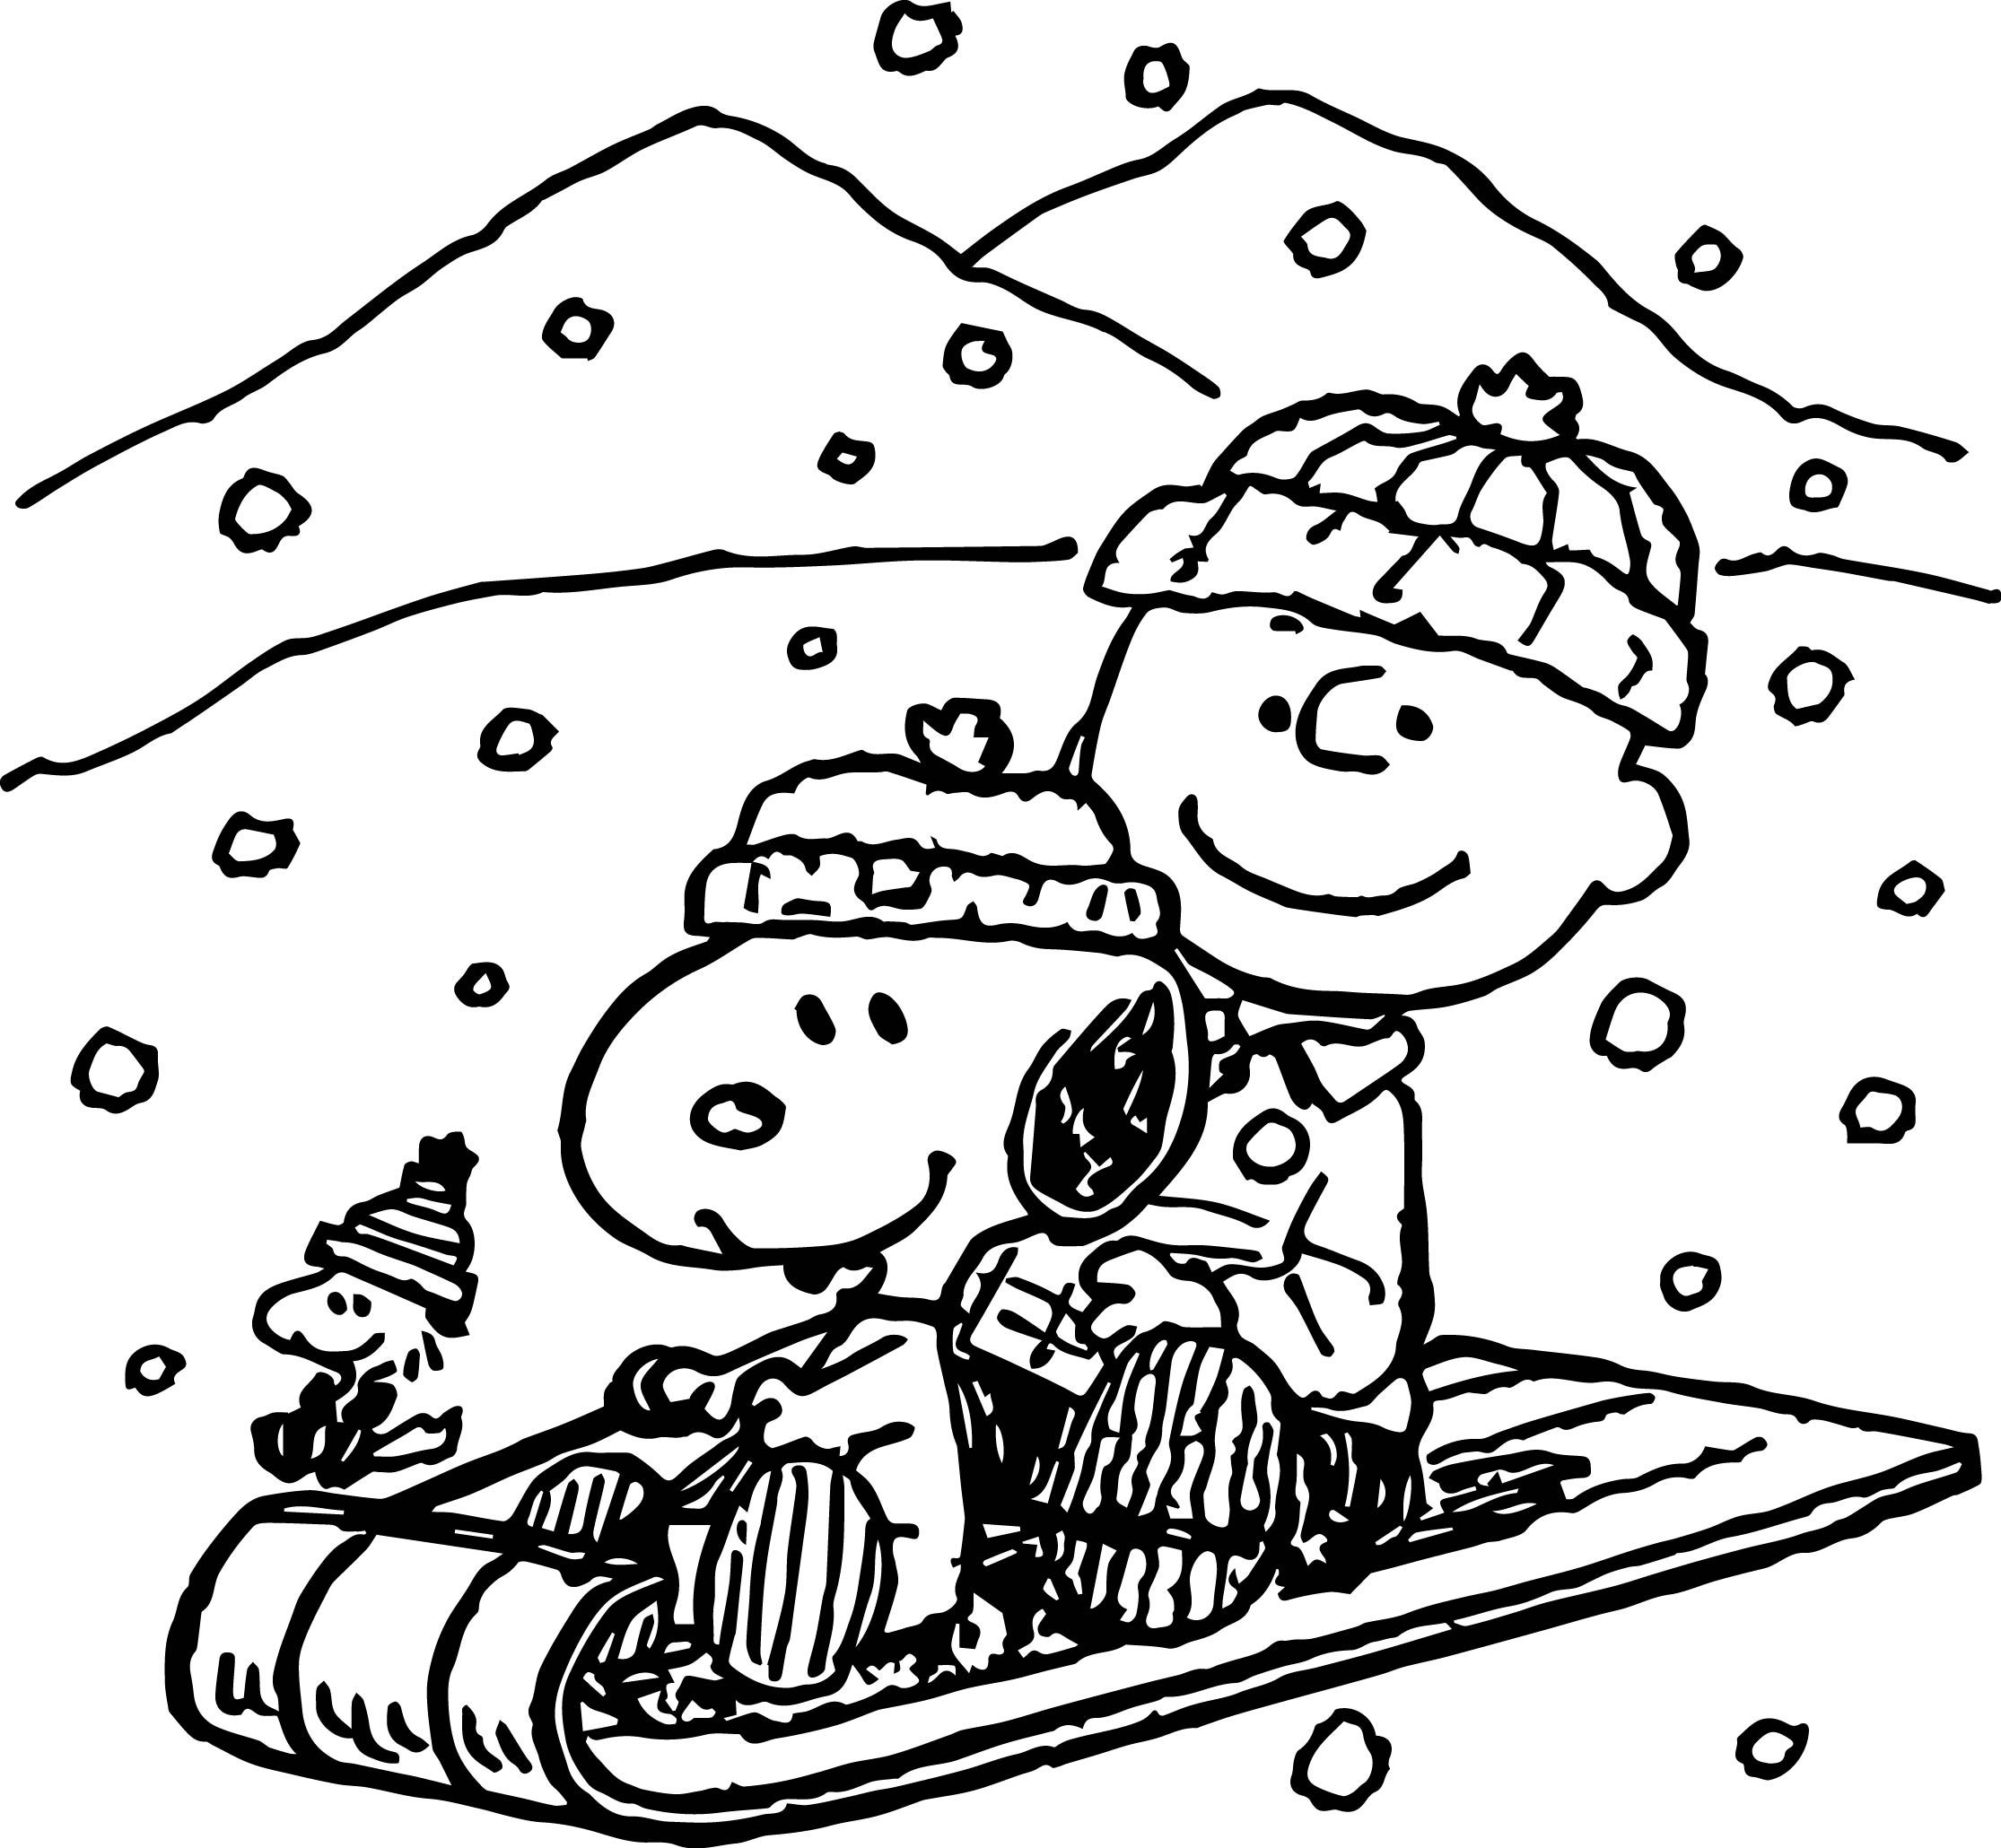 Snoopy-Winter-Coloring-Page.jpg (2230×2060) | Peanuts | Pinterest ...